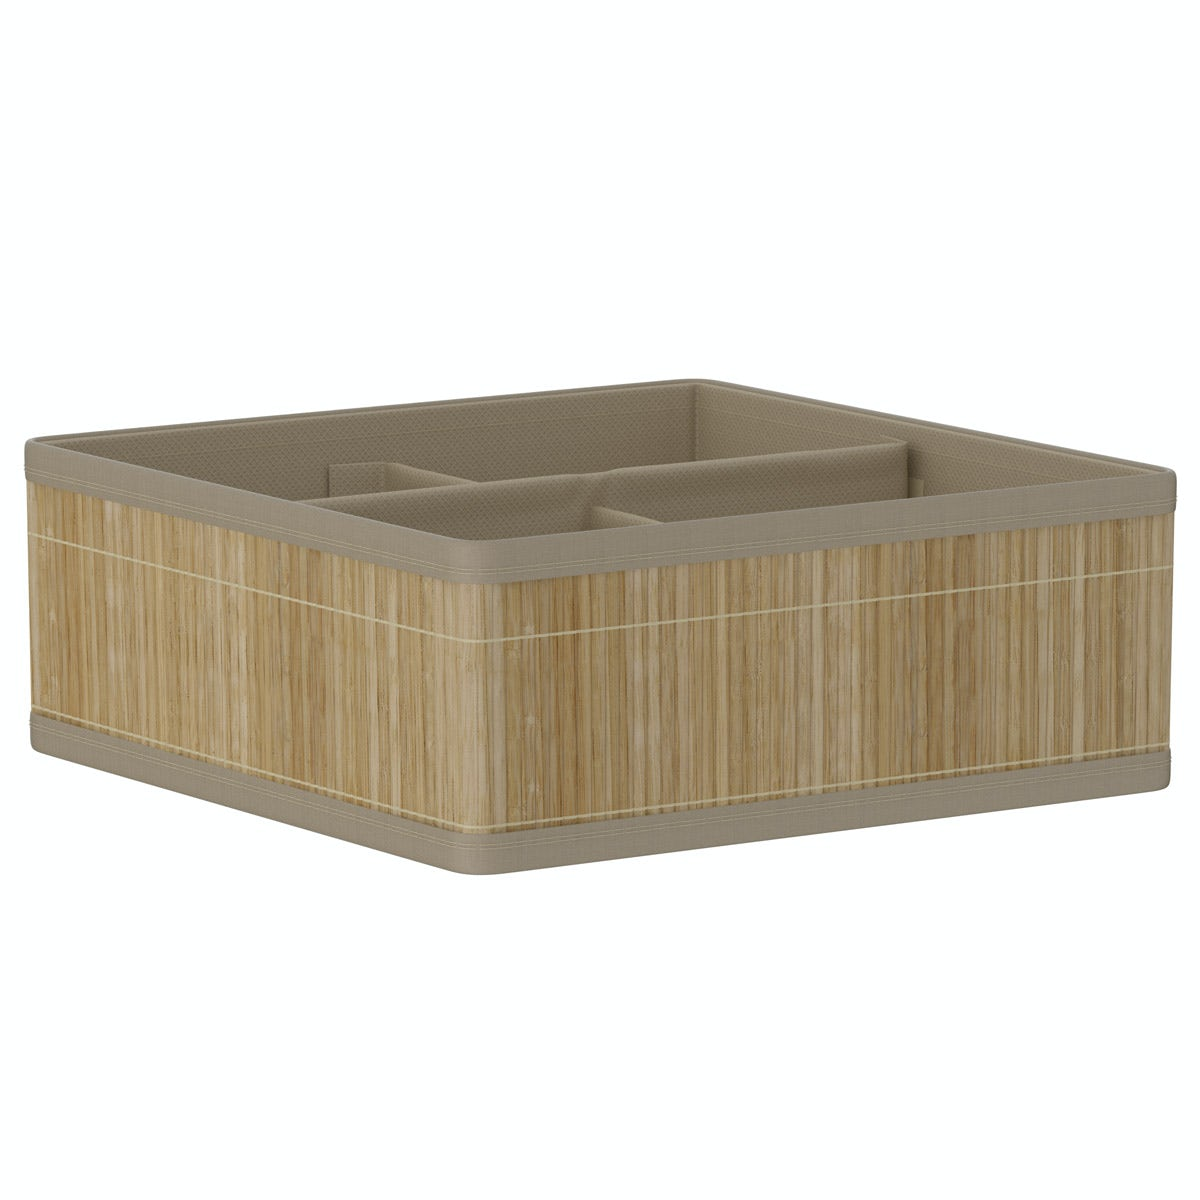 Orchard Natural bamboo 4 section storage basket